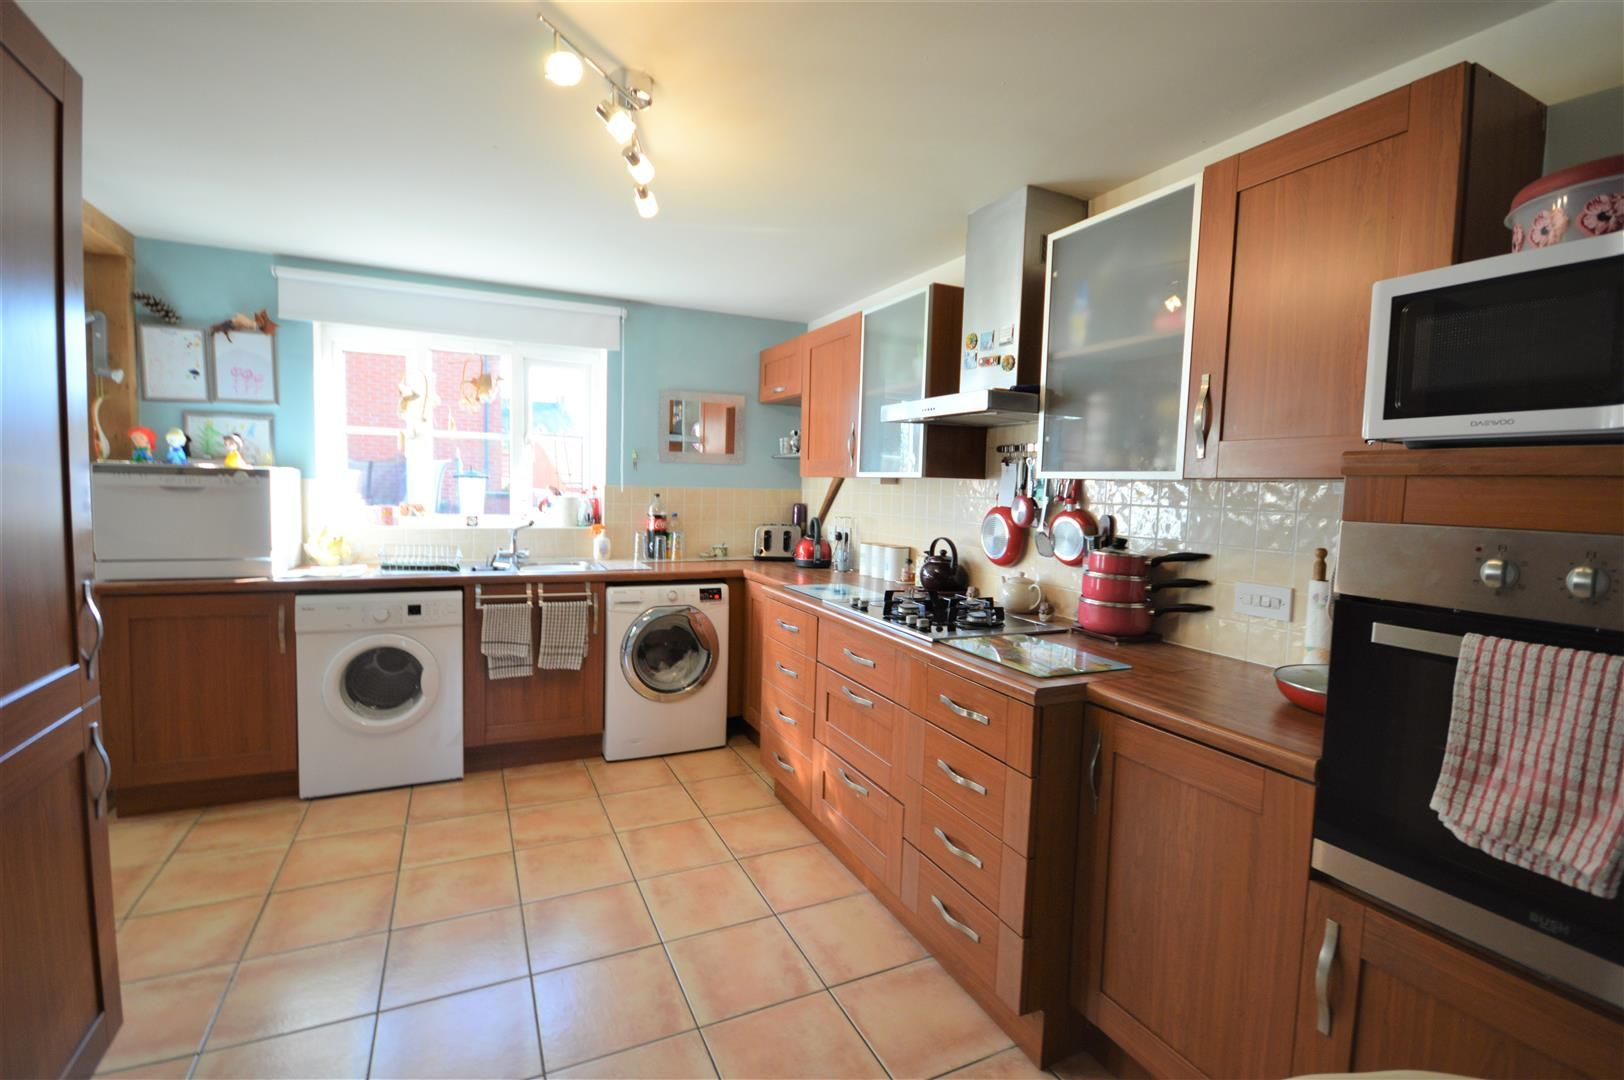 4 bed semi-detached for sale in Leominster 2